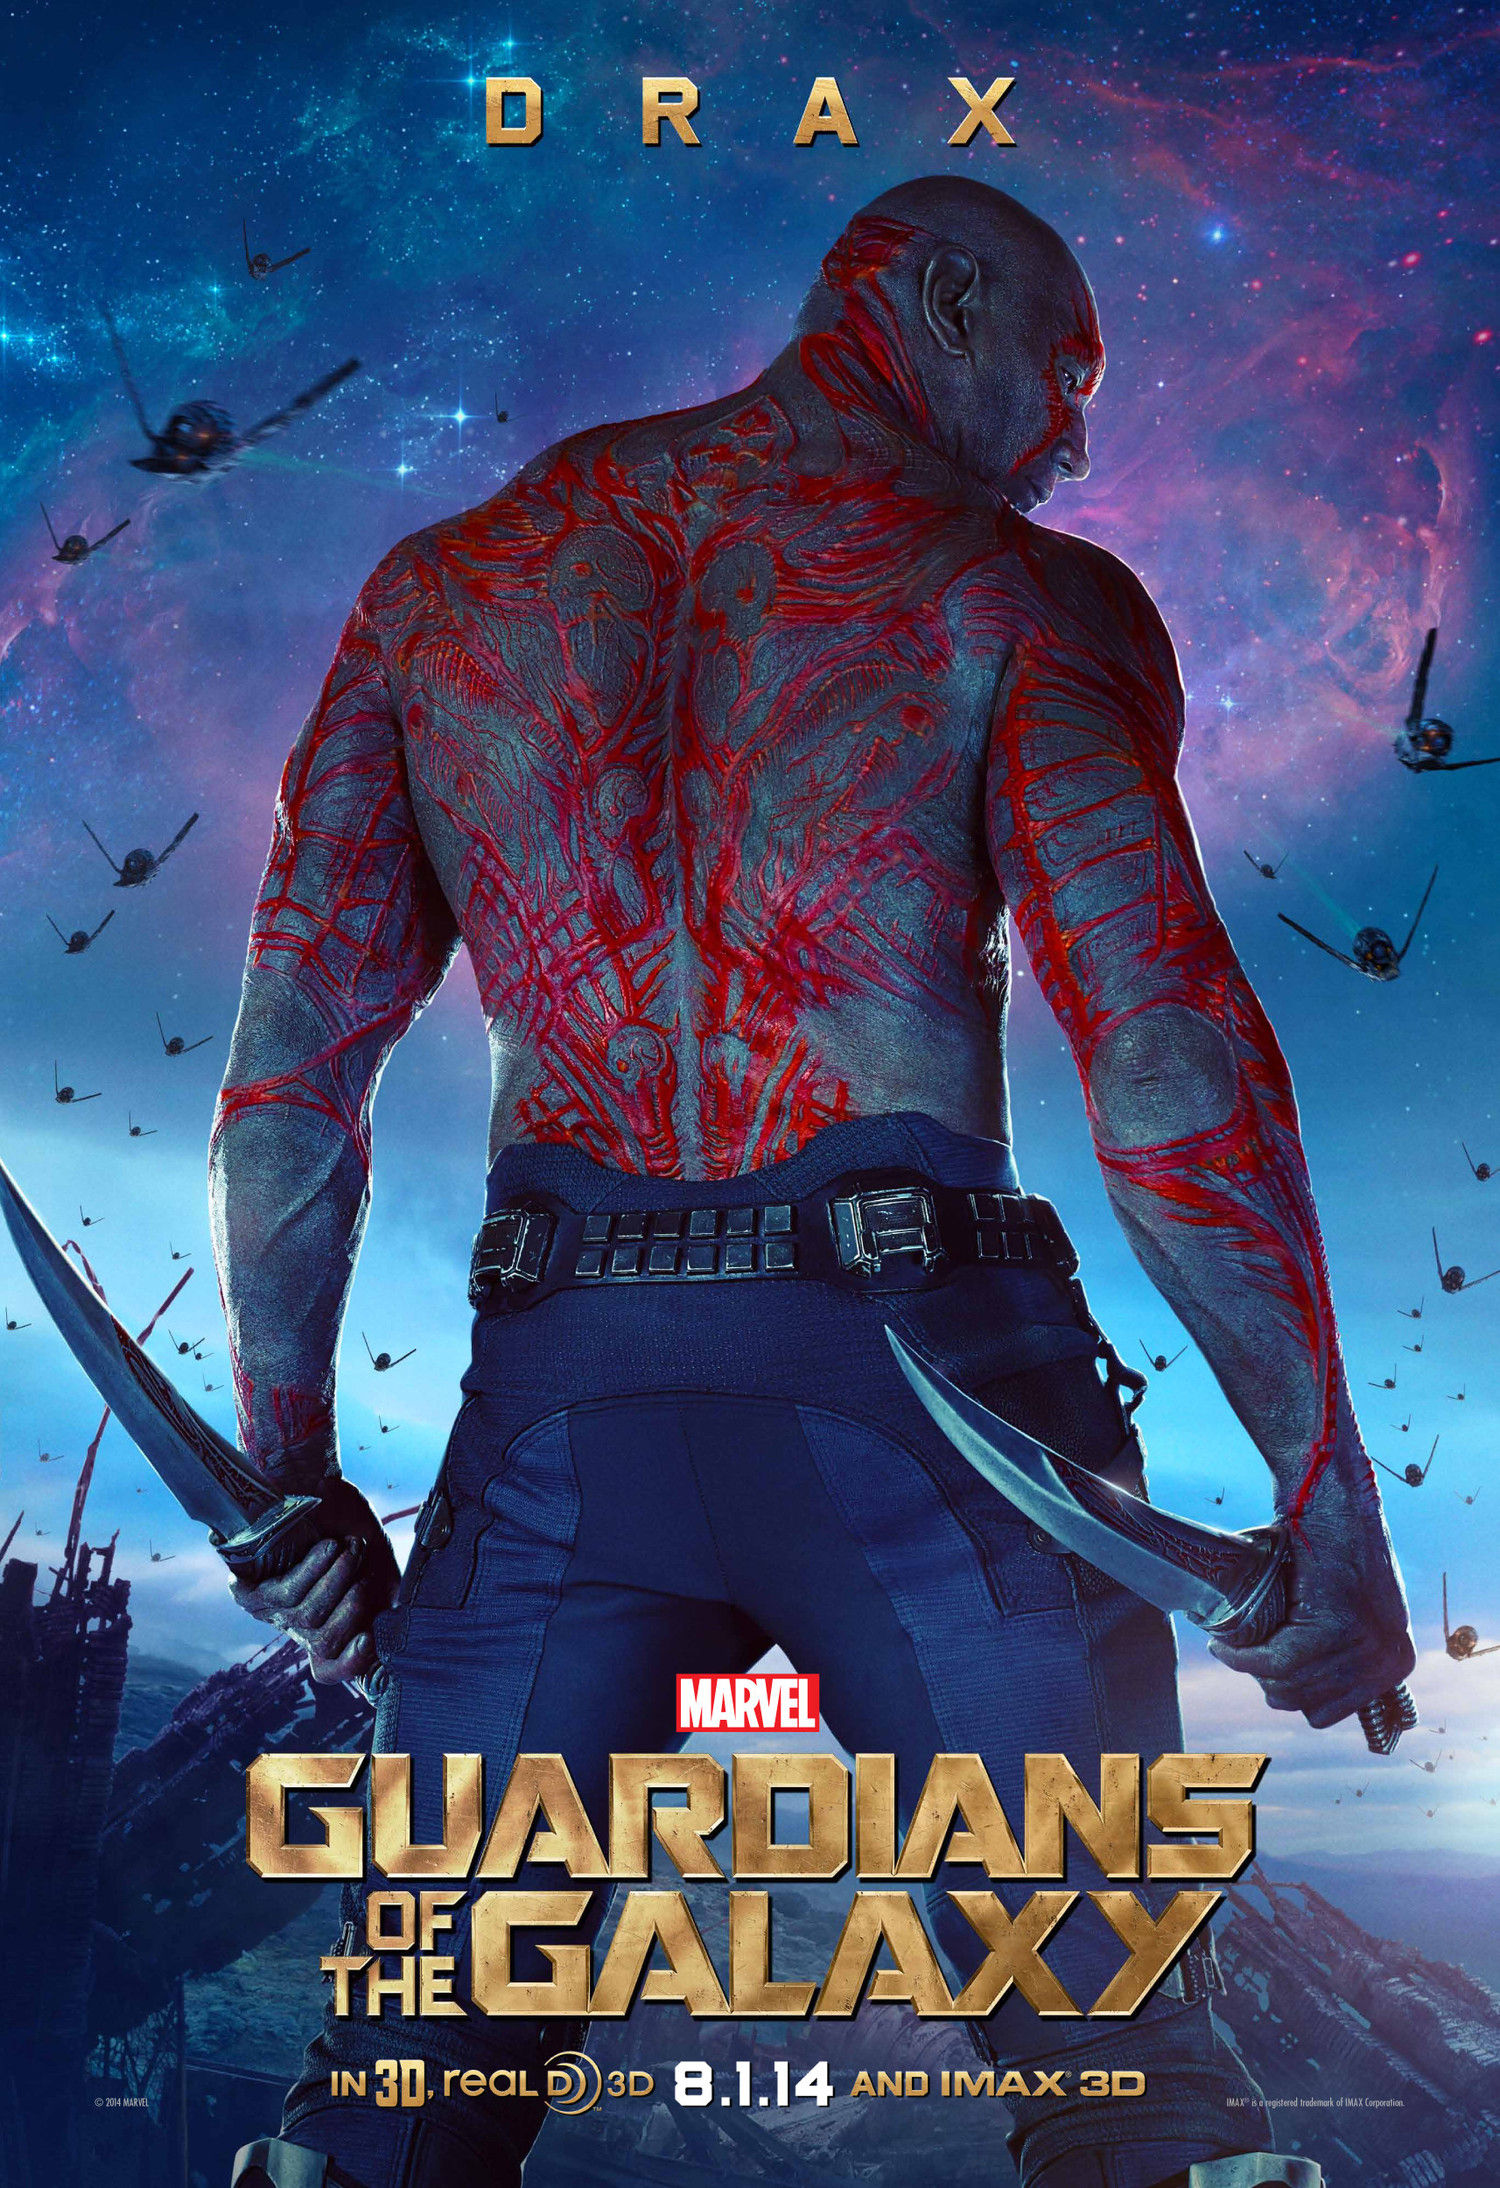 Drax And Star Lord In New Guardians Of The Galaxy Posters